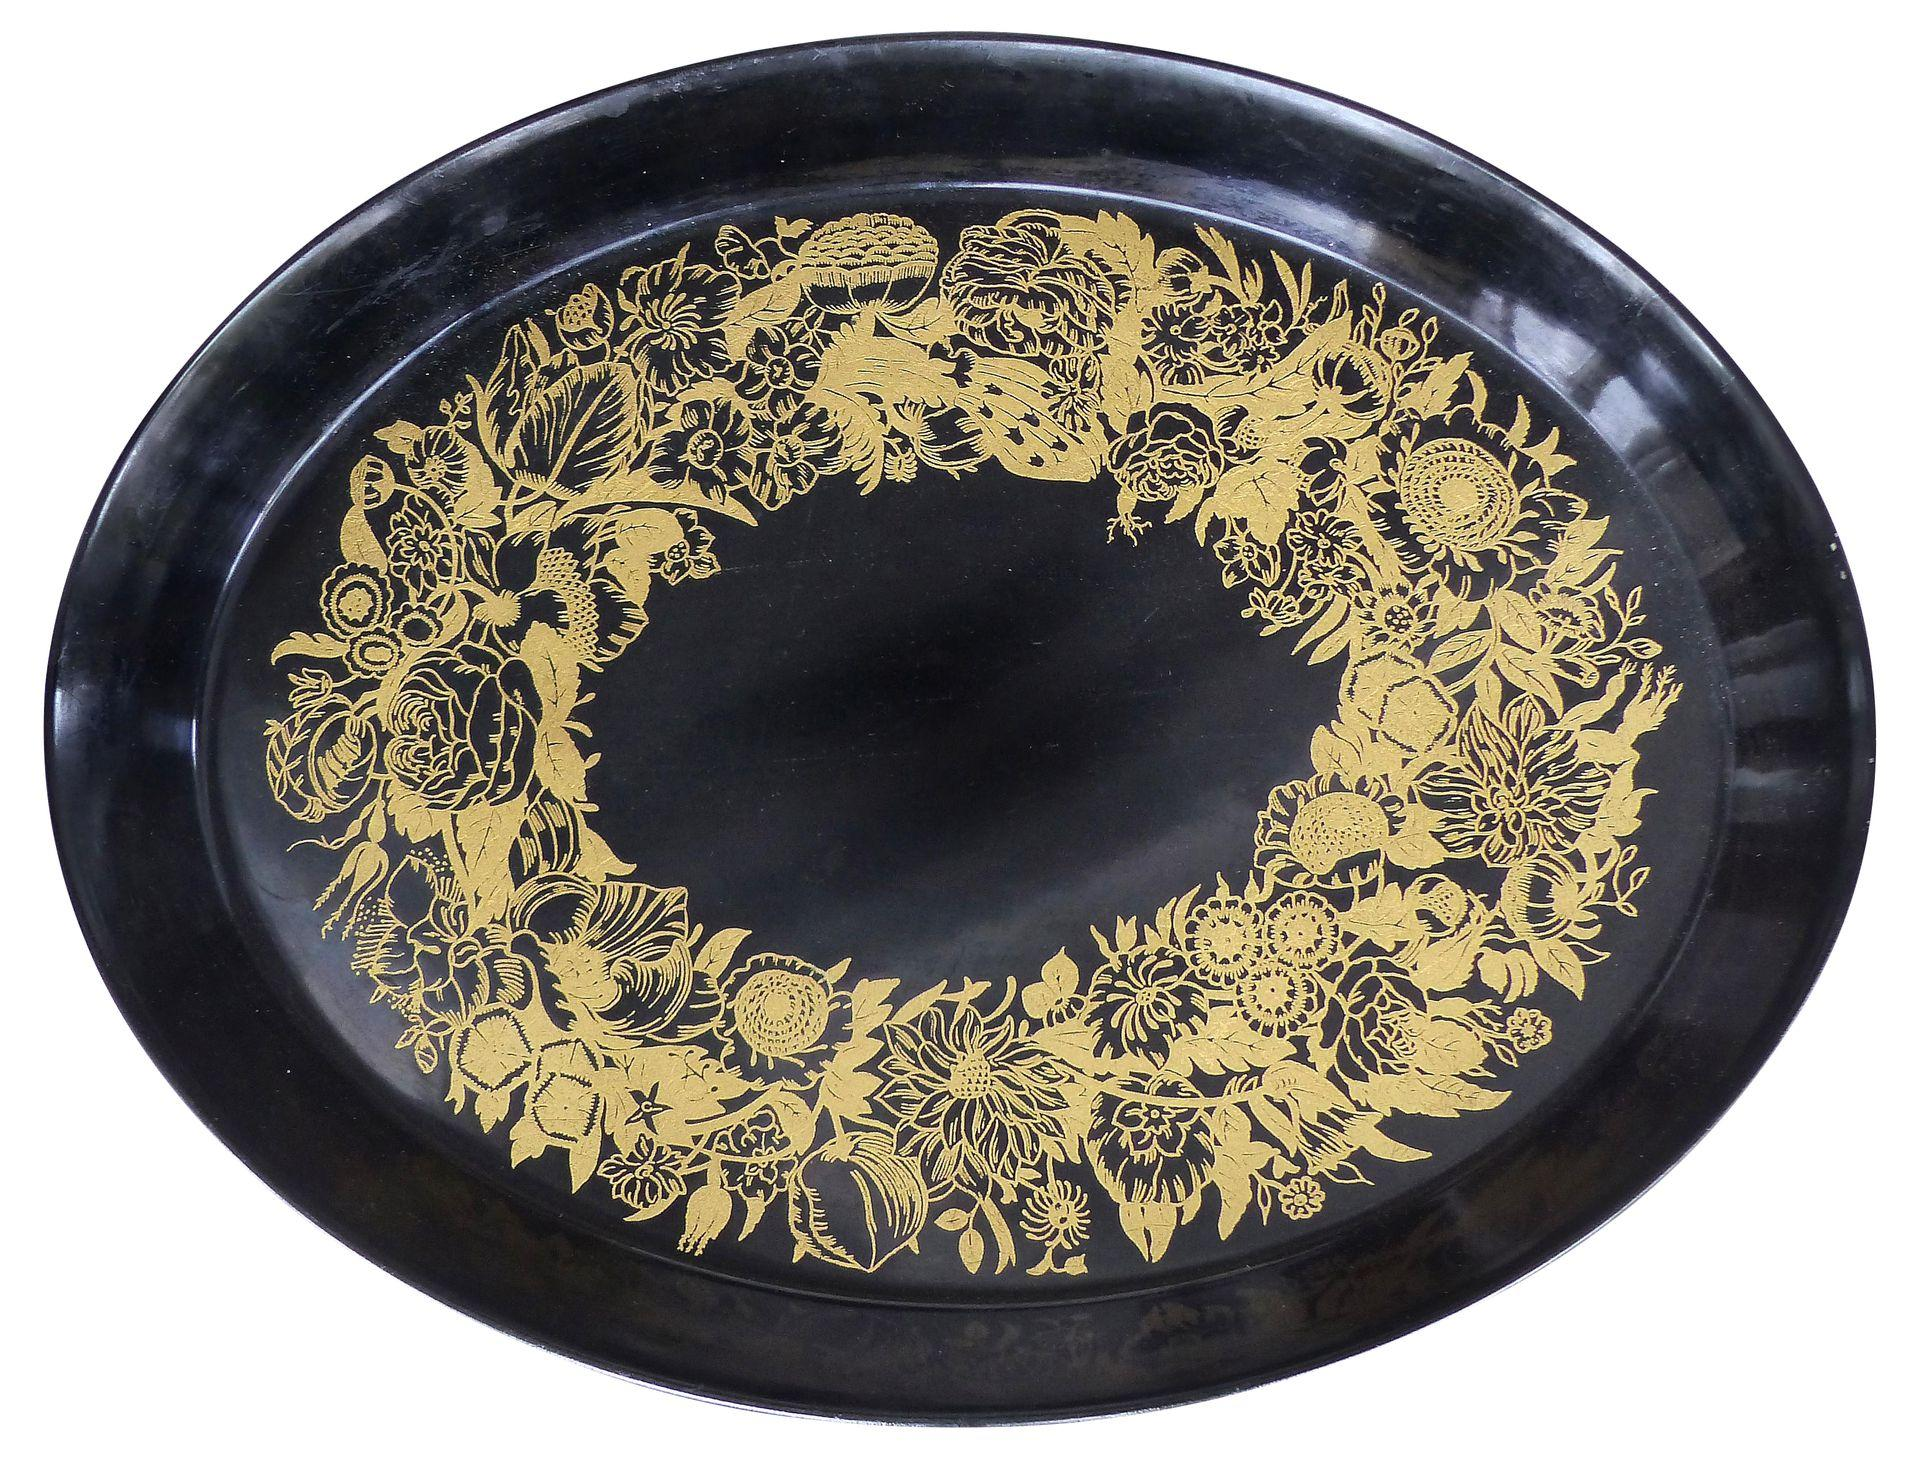 Large Oval Metal Piero Fornasetti Tray Modernism